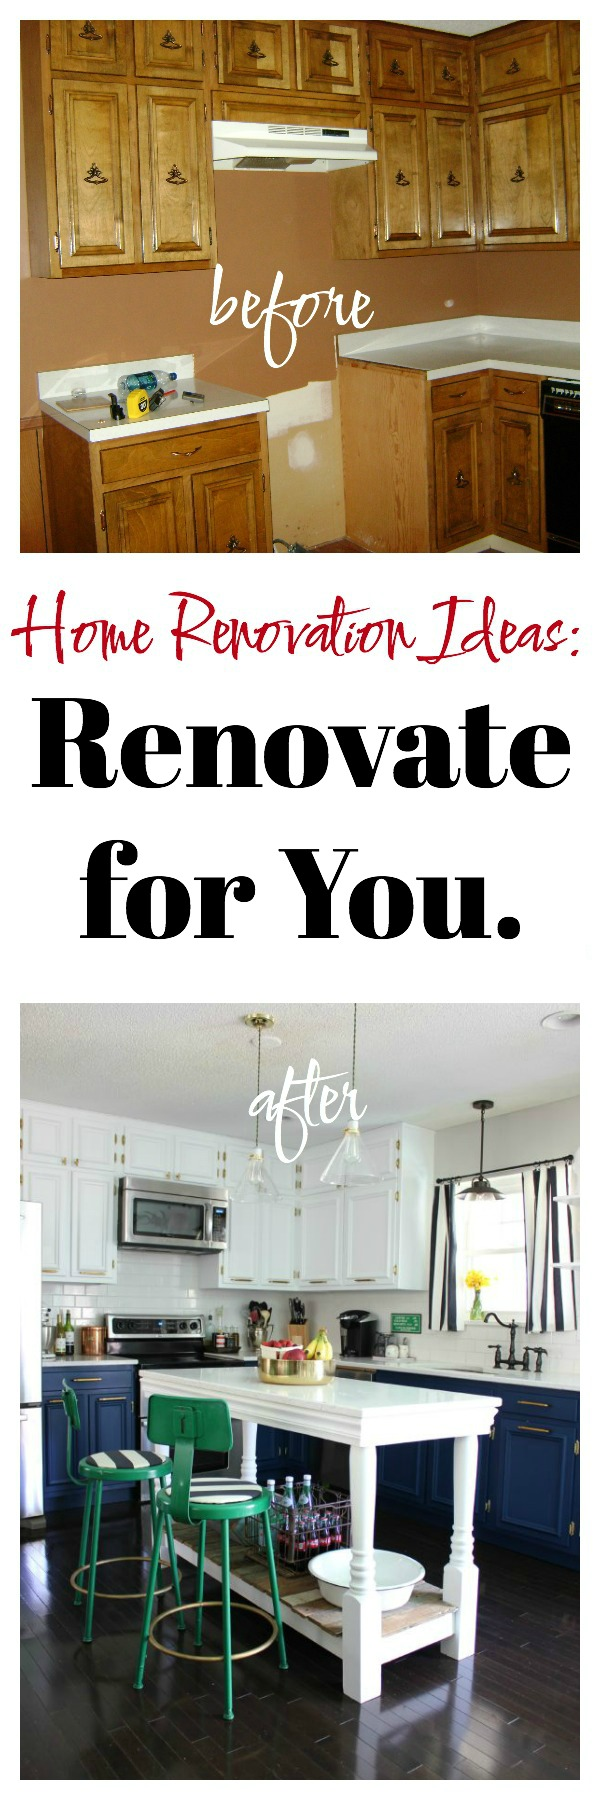 Renovate for YOU! Lots of great ideas in this article about home renovating and great resources too!